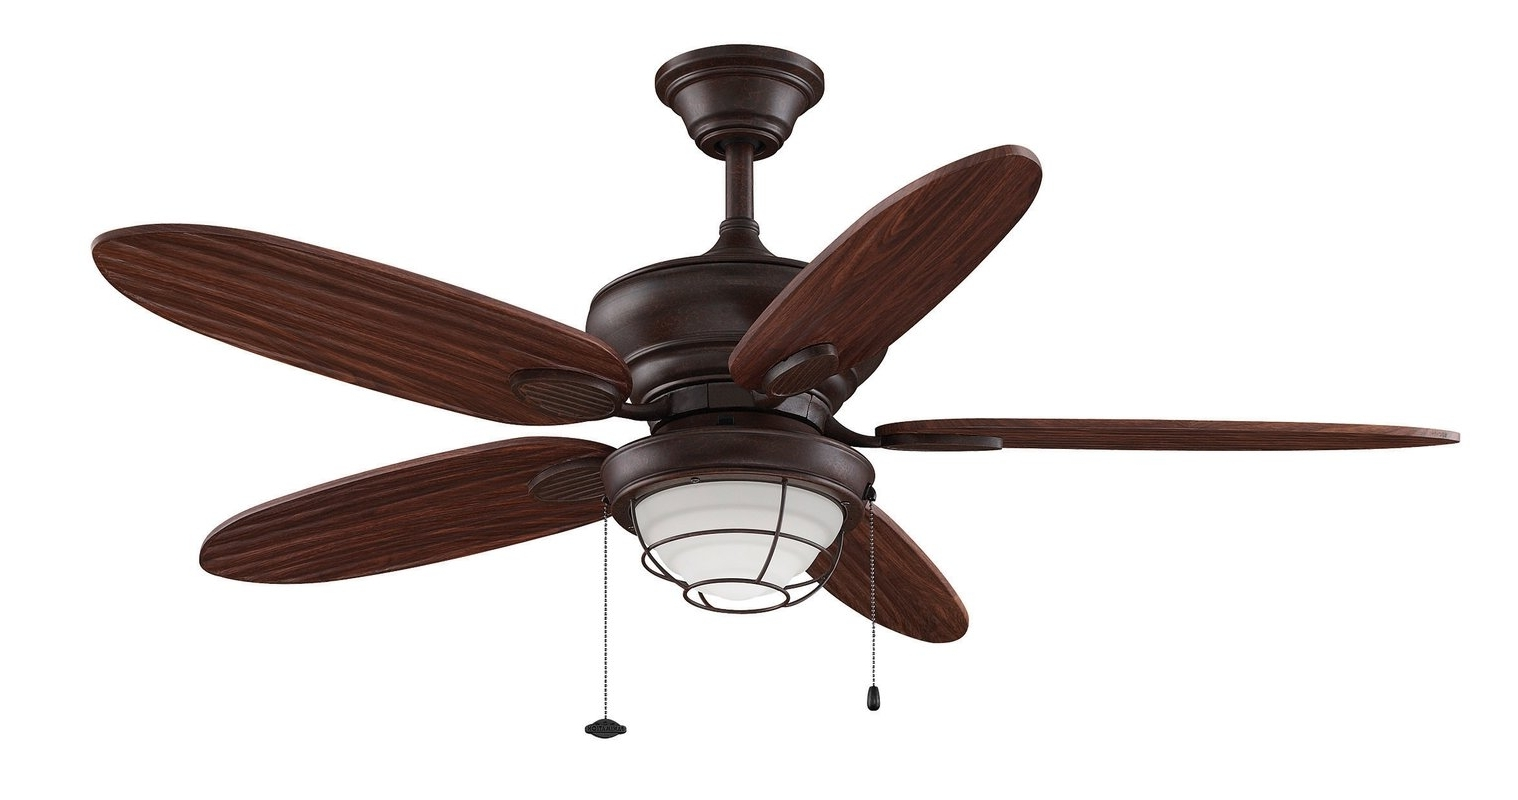 Wayfair Outdoor Ceiling Fans With Lights Within Famous Outdoor Ceiling Fans C Wayfair Ceiling Fans With Lights Simple (View 18 of 20)